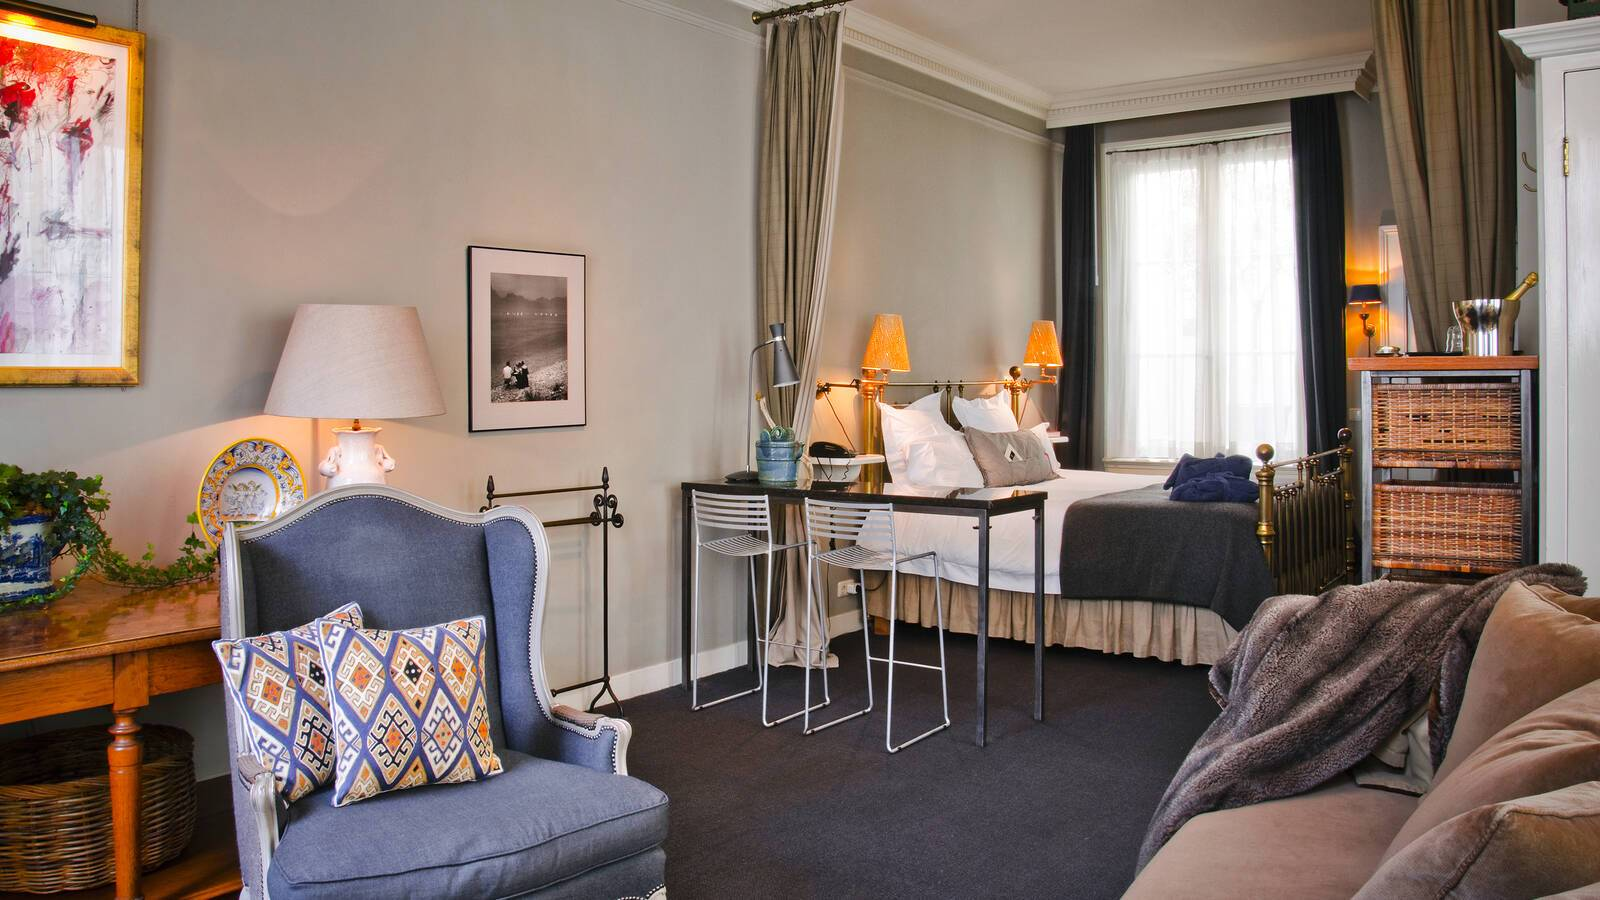 717 hotel junior suite shakespeare amsterdam